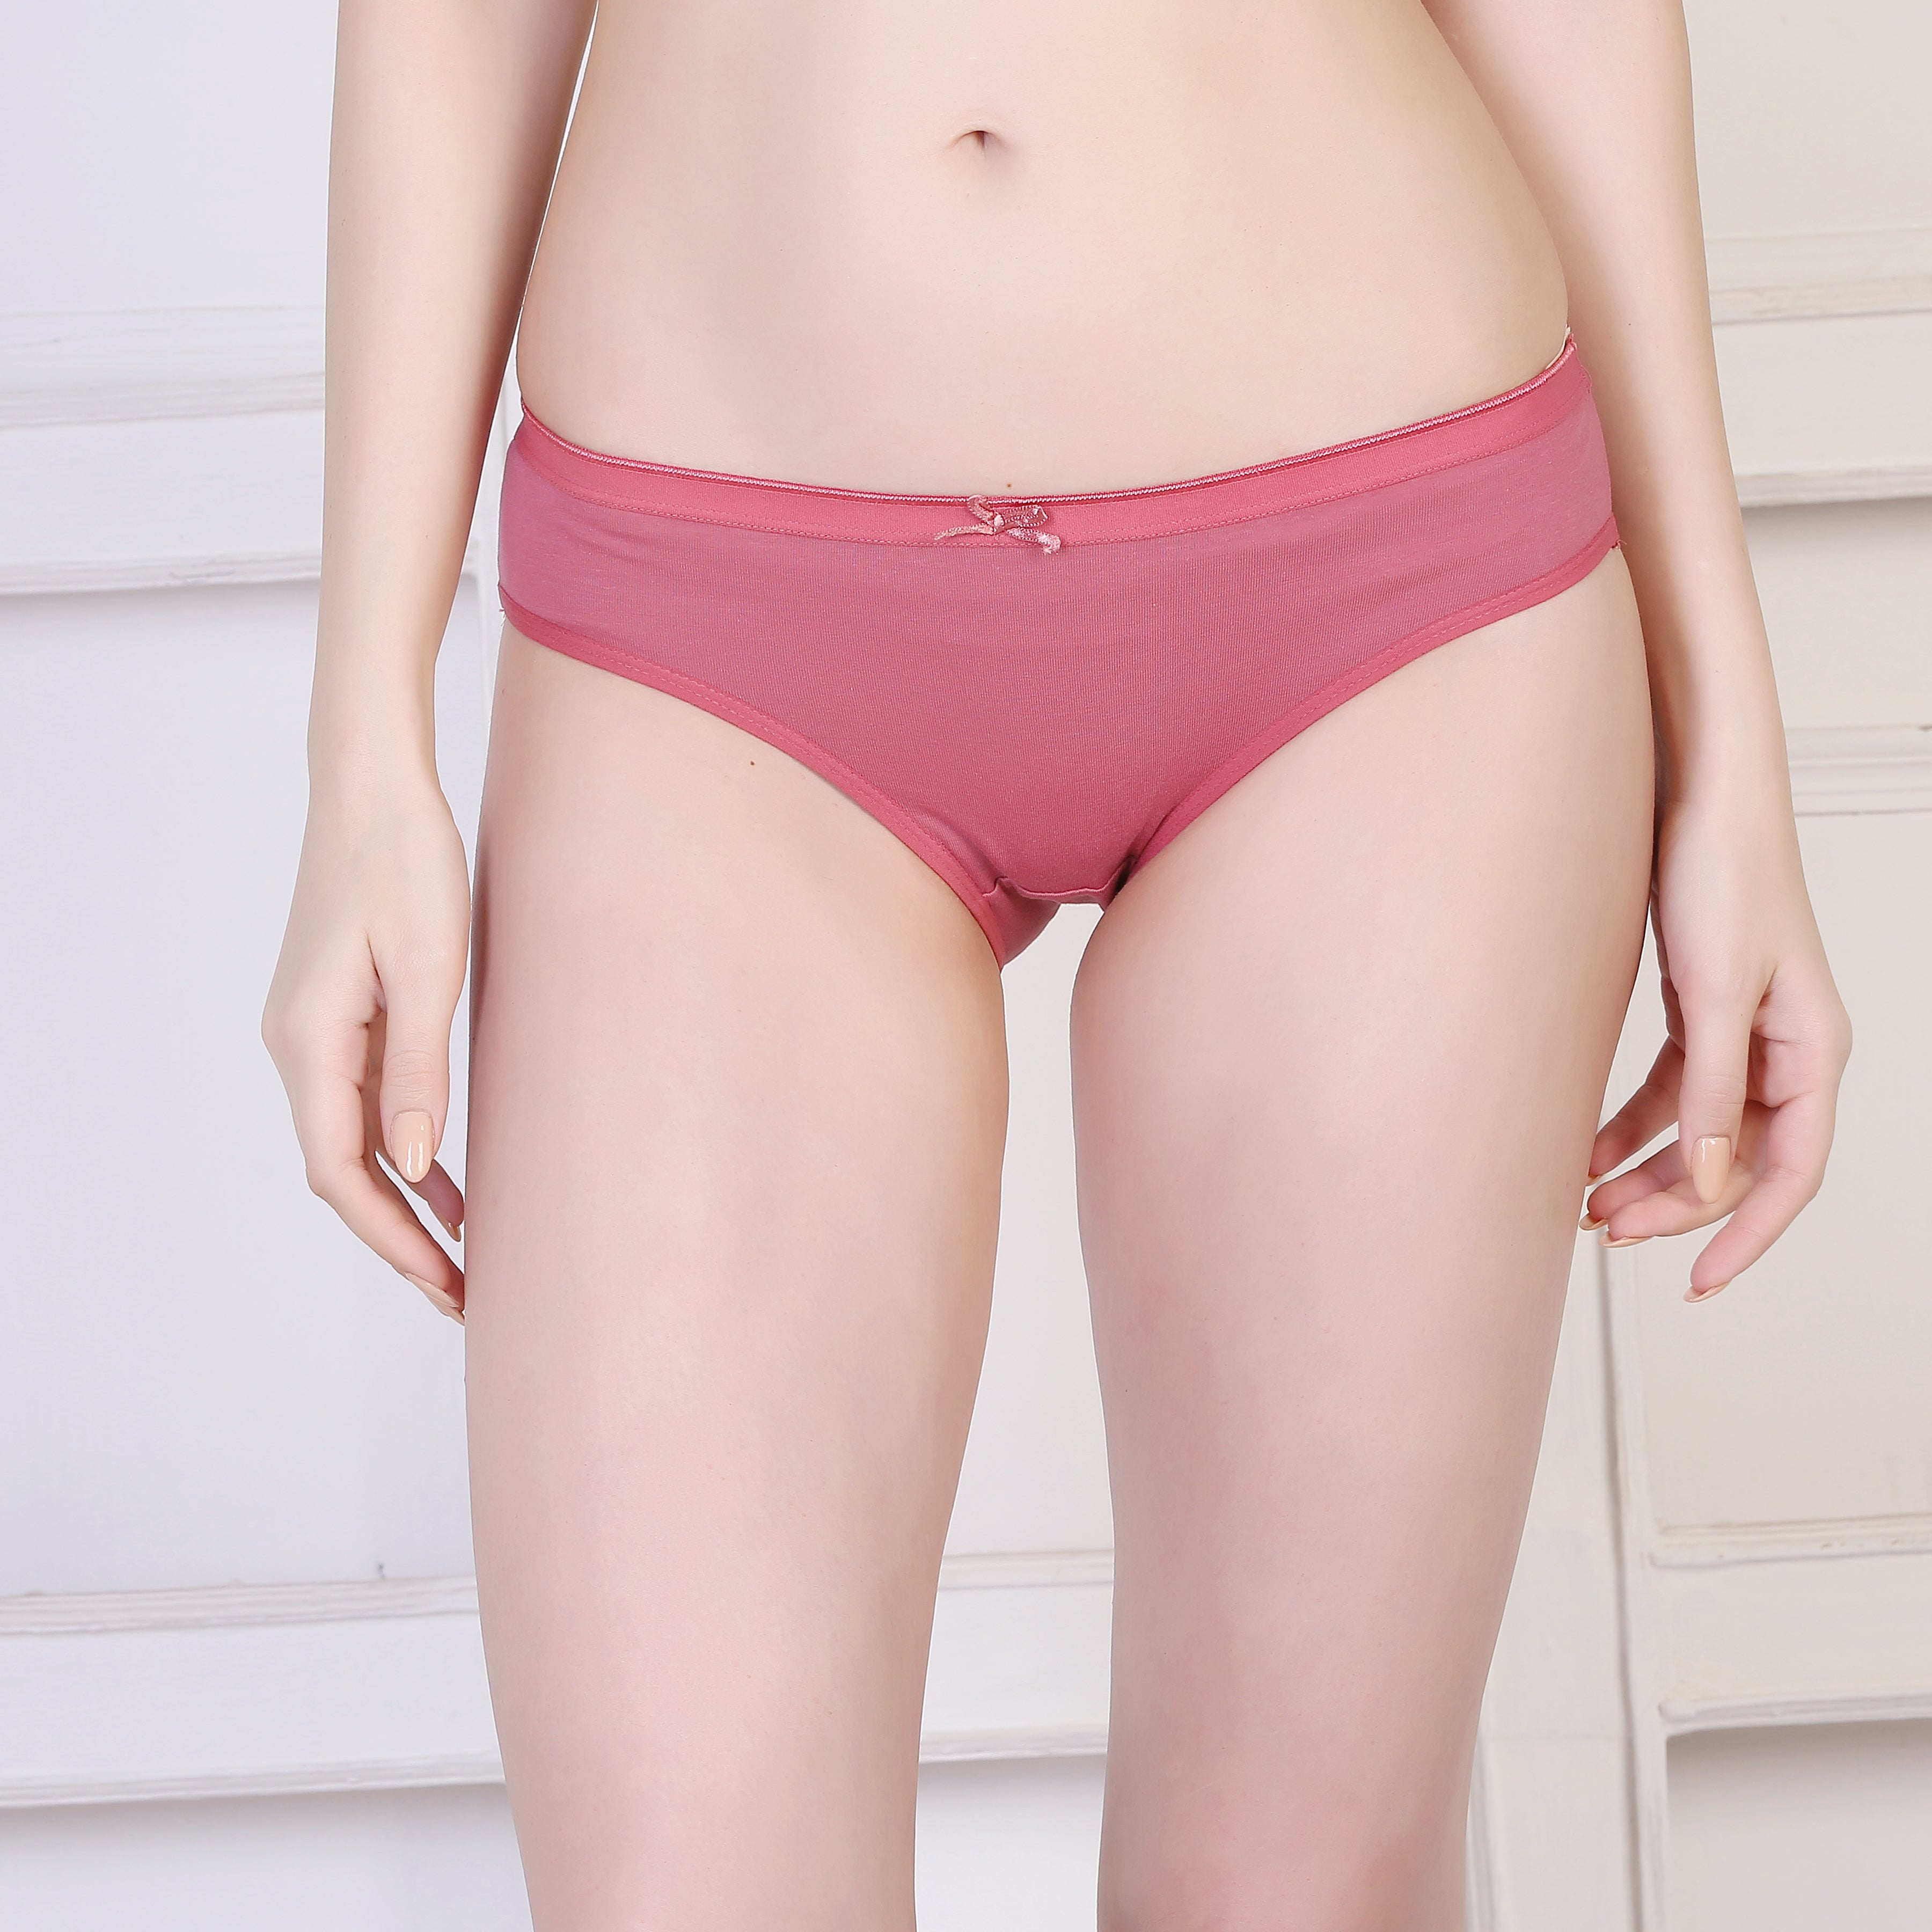 Ficuster Pink Peach Low Rise Cotton Bikini Panty (Pack of 2)